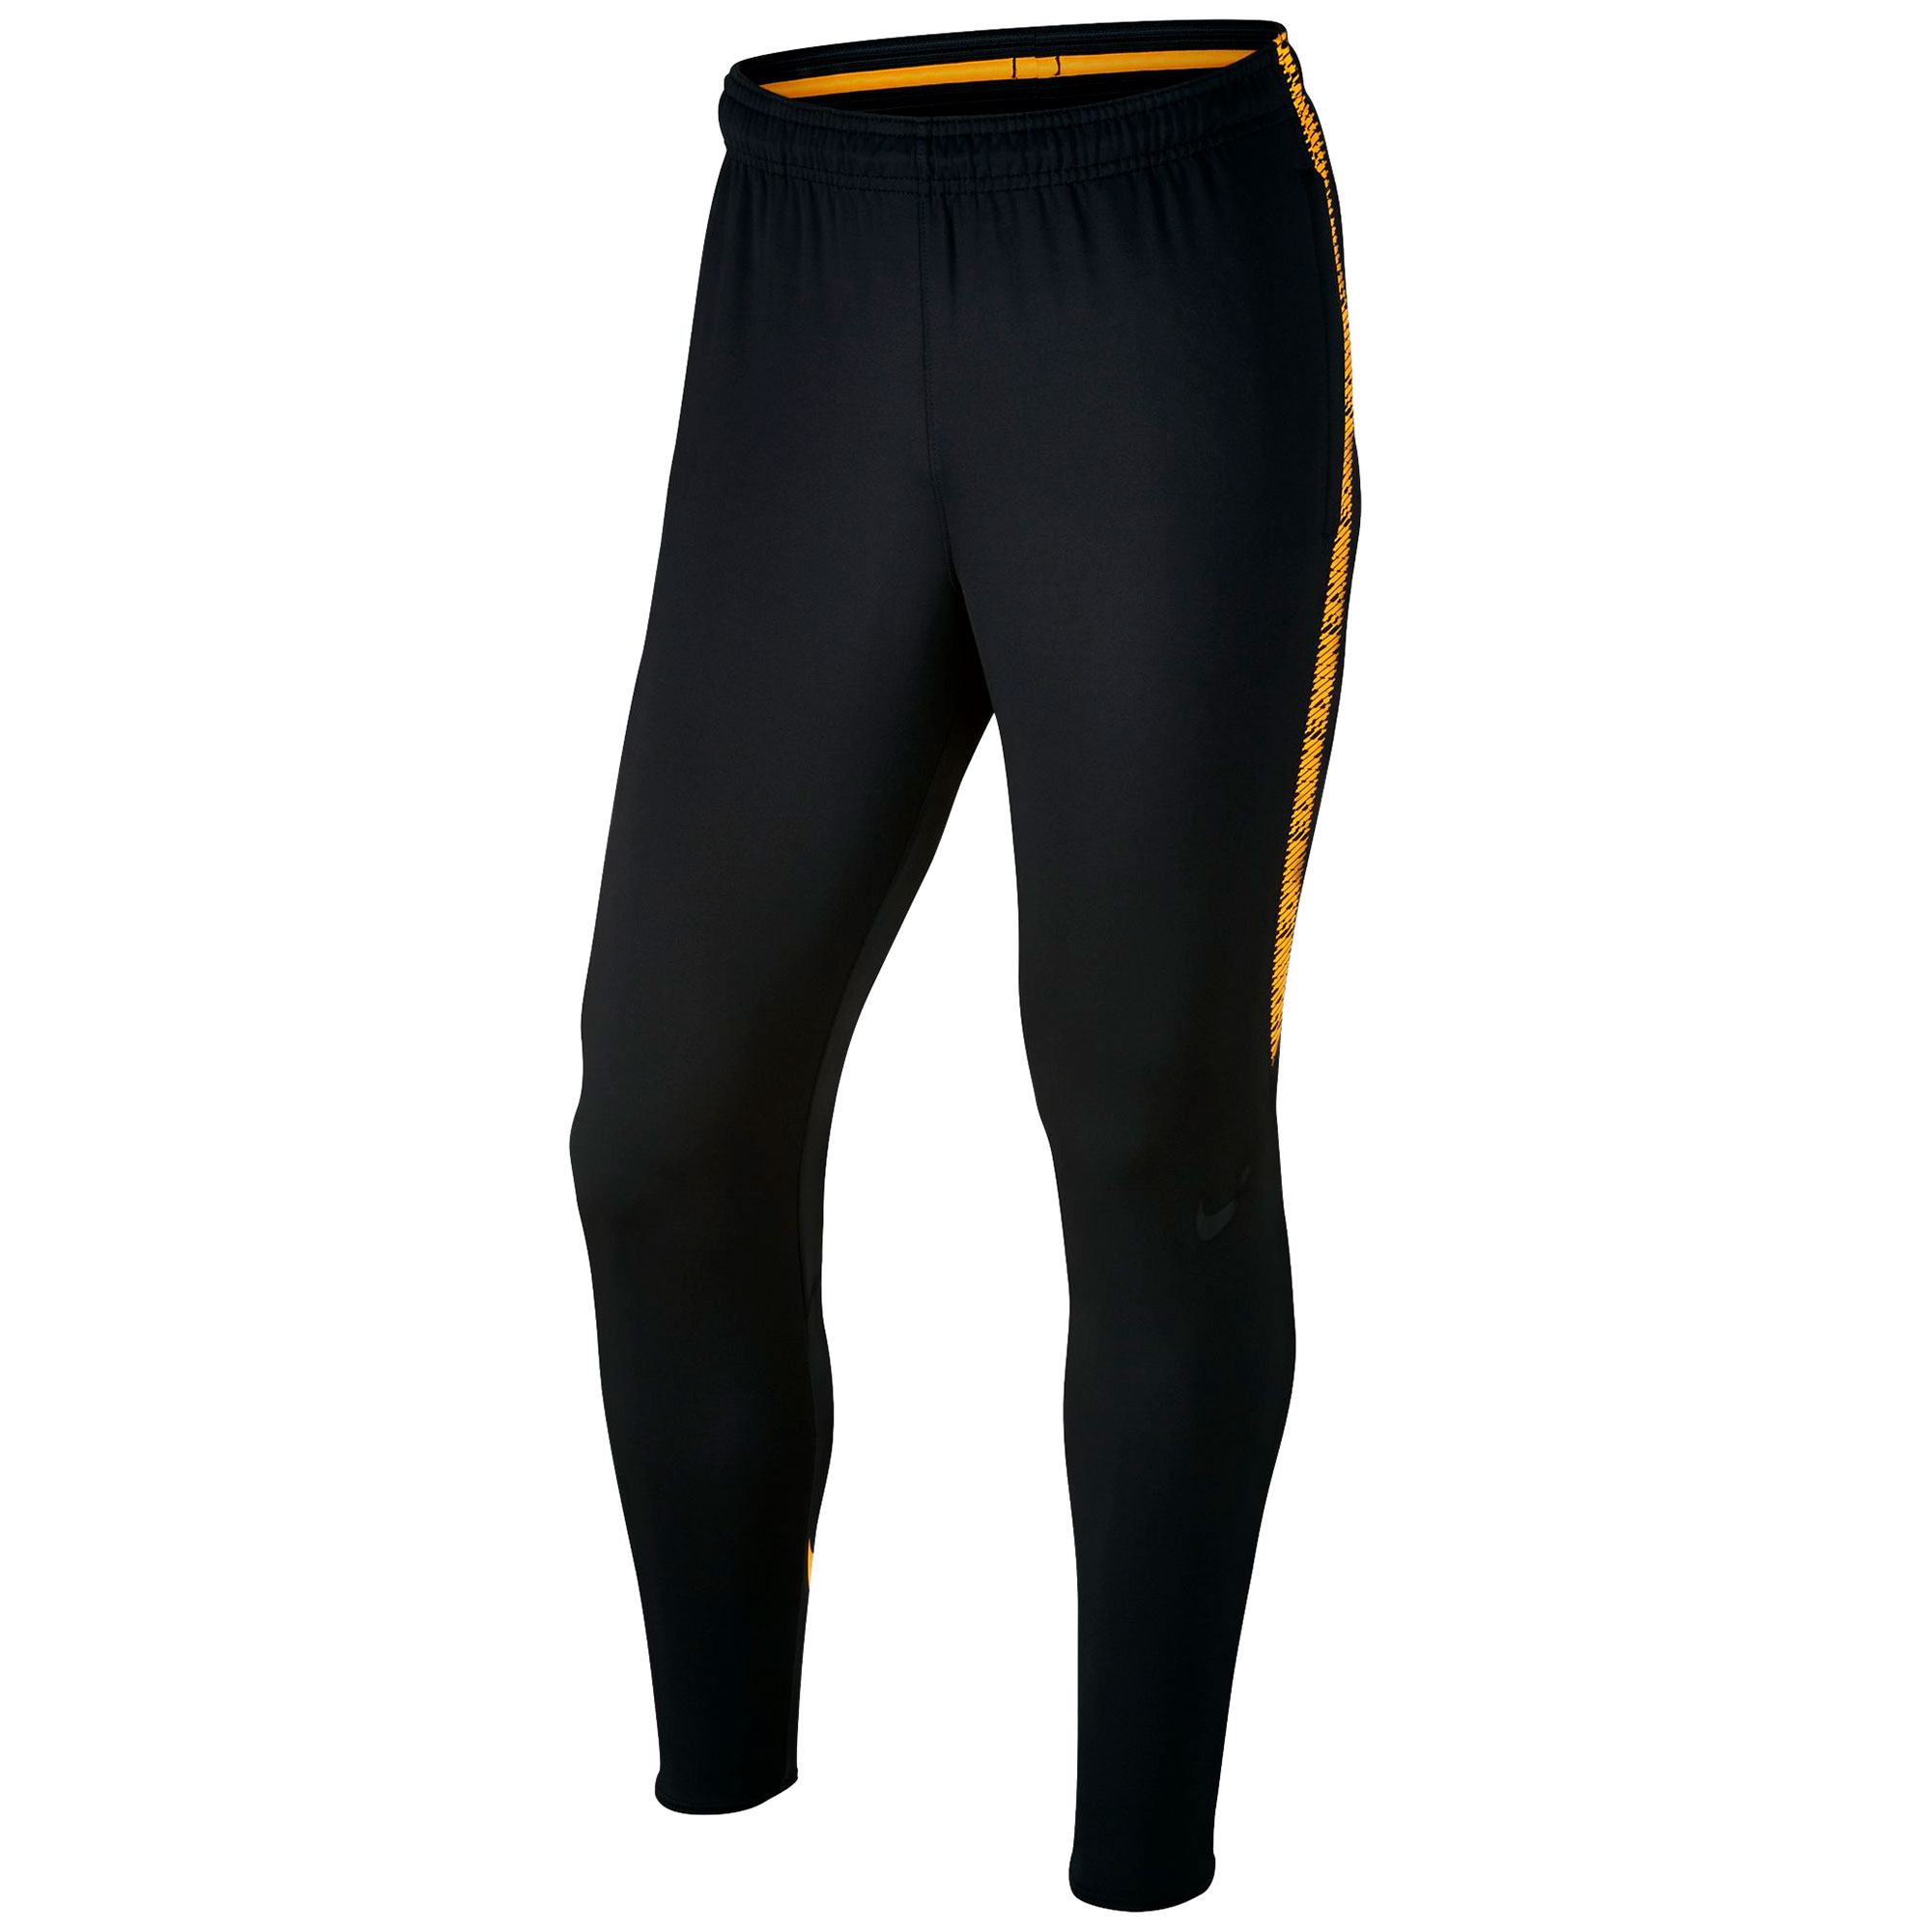 Nike Dry Squad Pants - Black/Black/Laser Orange/Black